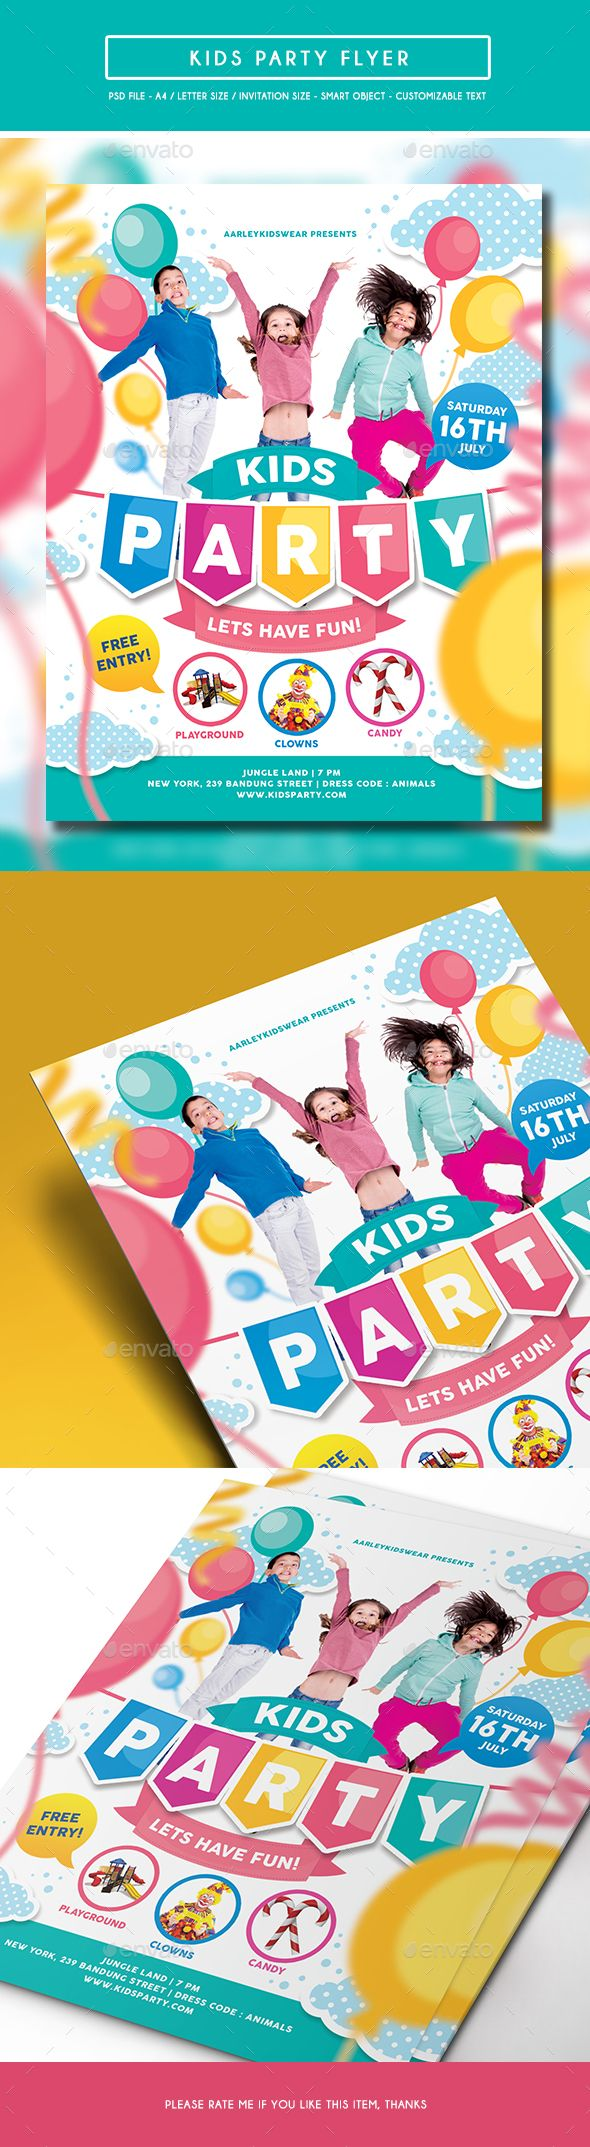 Kids Party Flyer / Invitation - Clubs & Parties Events  #Flyer  #Template #businessflyer #business #template #flyers #kids #psdflyer #psd #TemplatePSD #PrintTemplates #Print #PSD